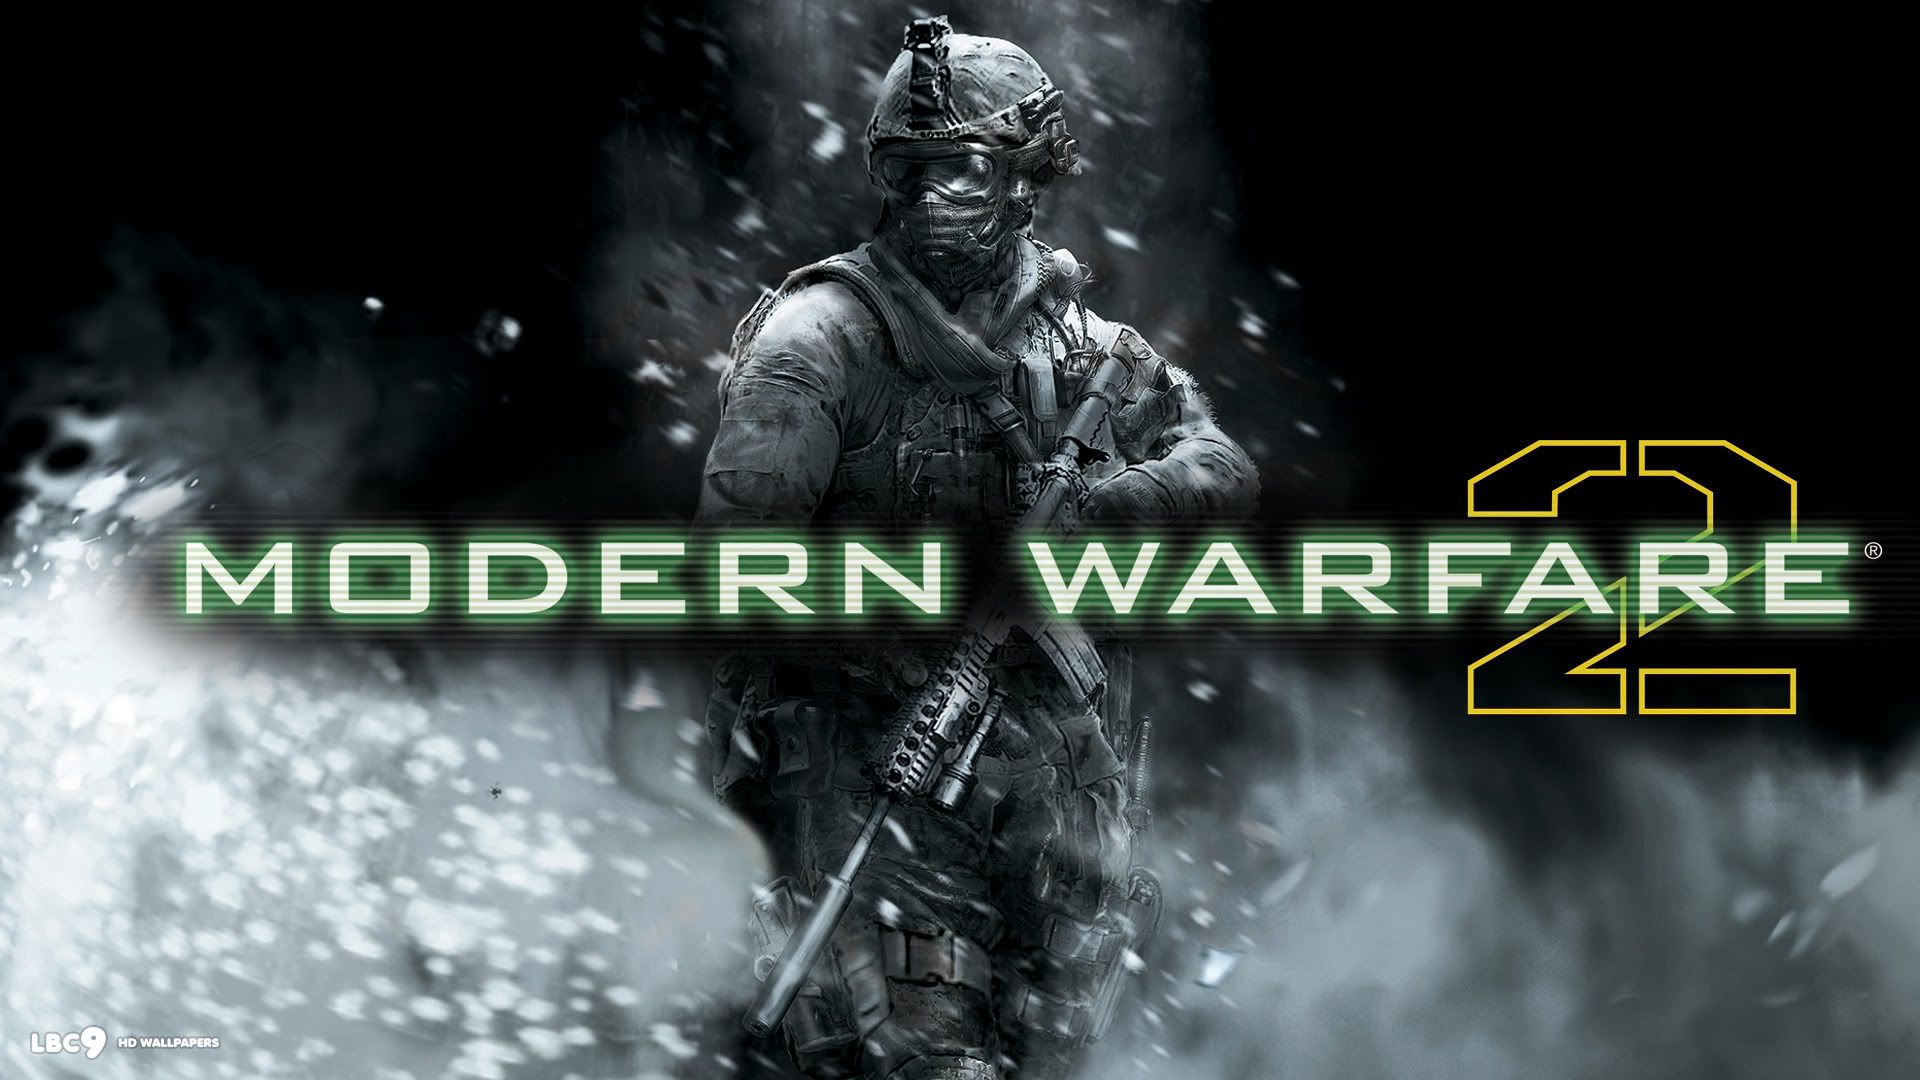 Call of Duty: Modern Warfare Remastered MULTIPLAYER